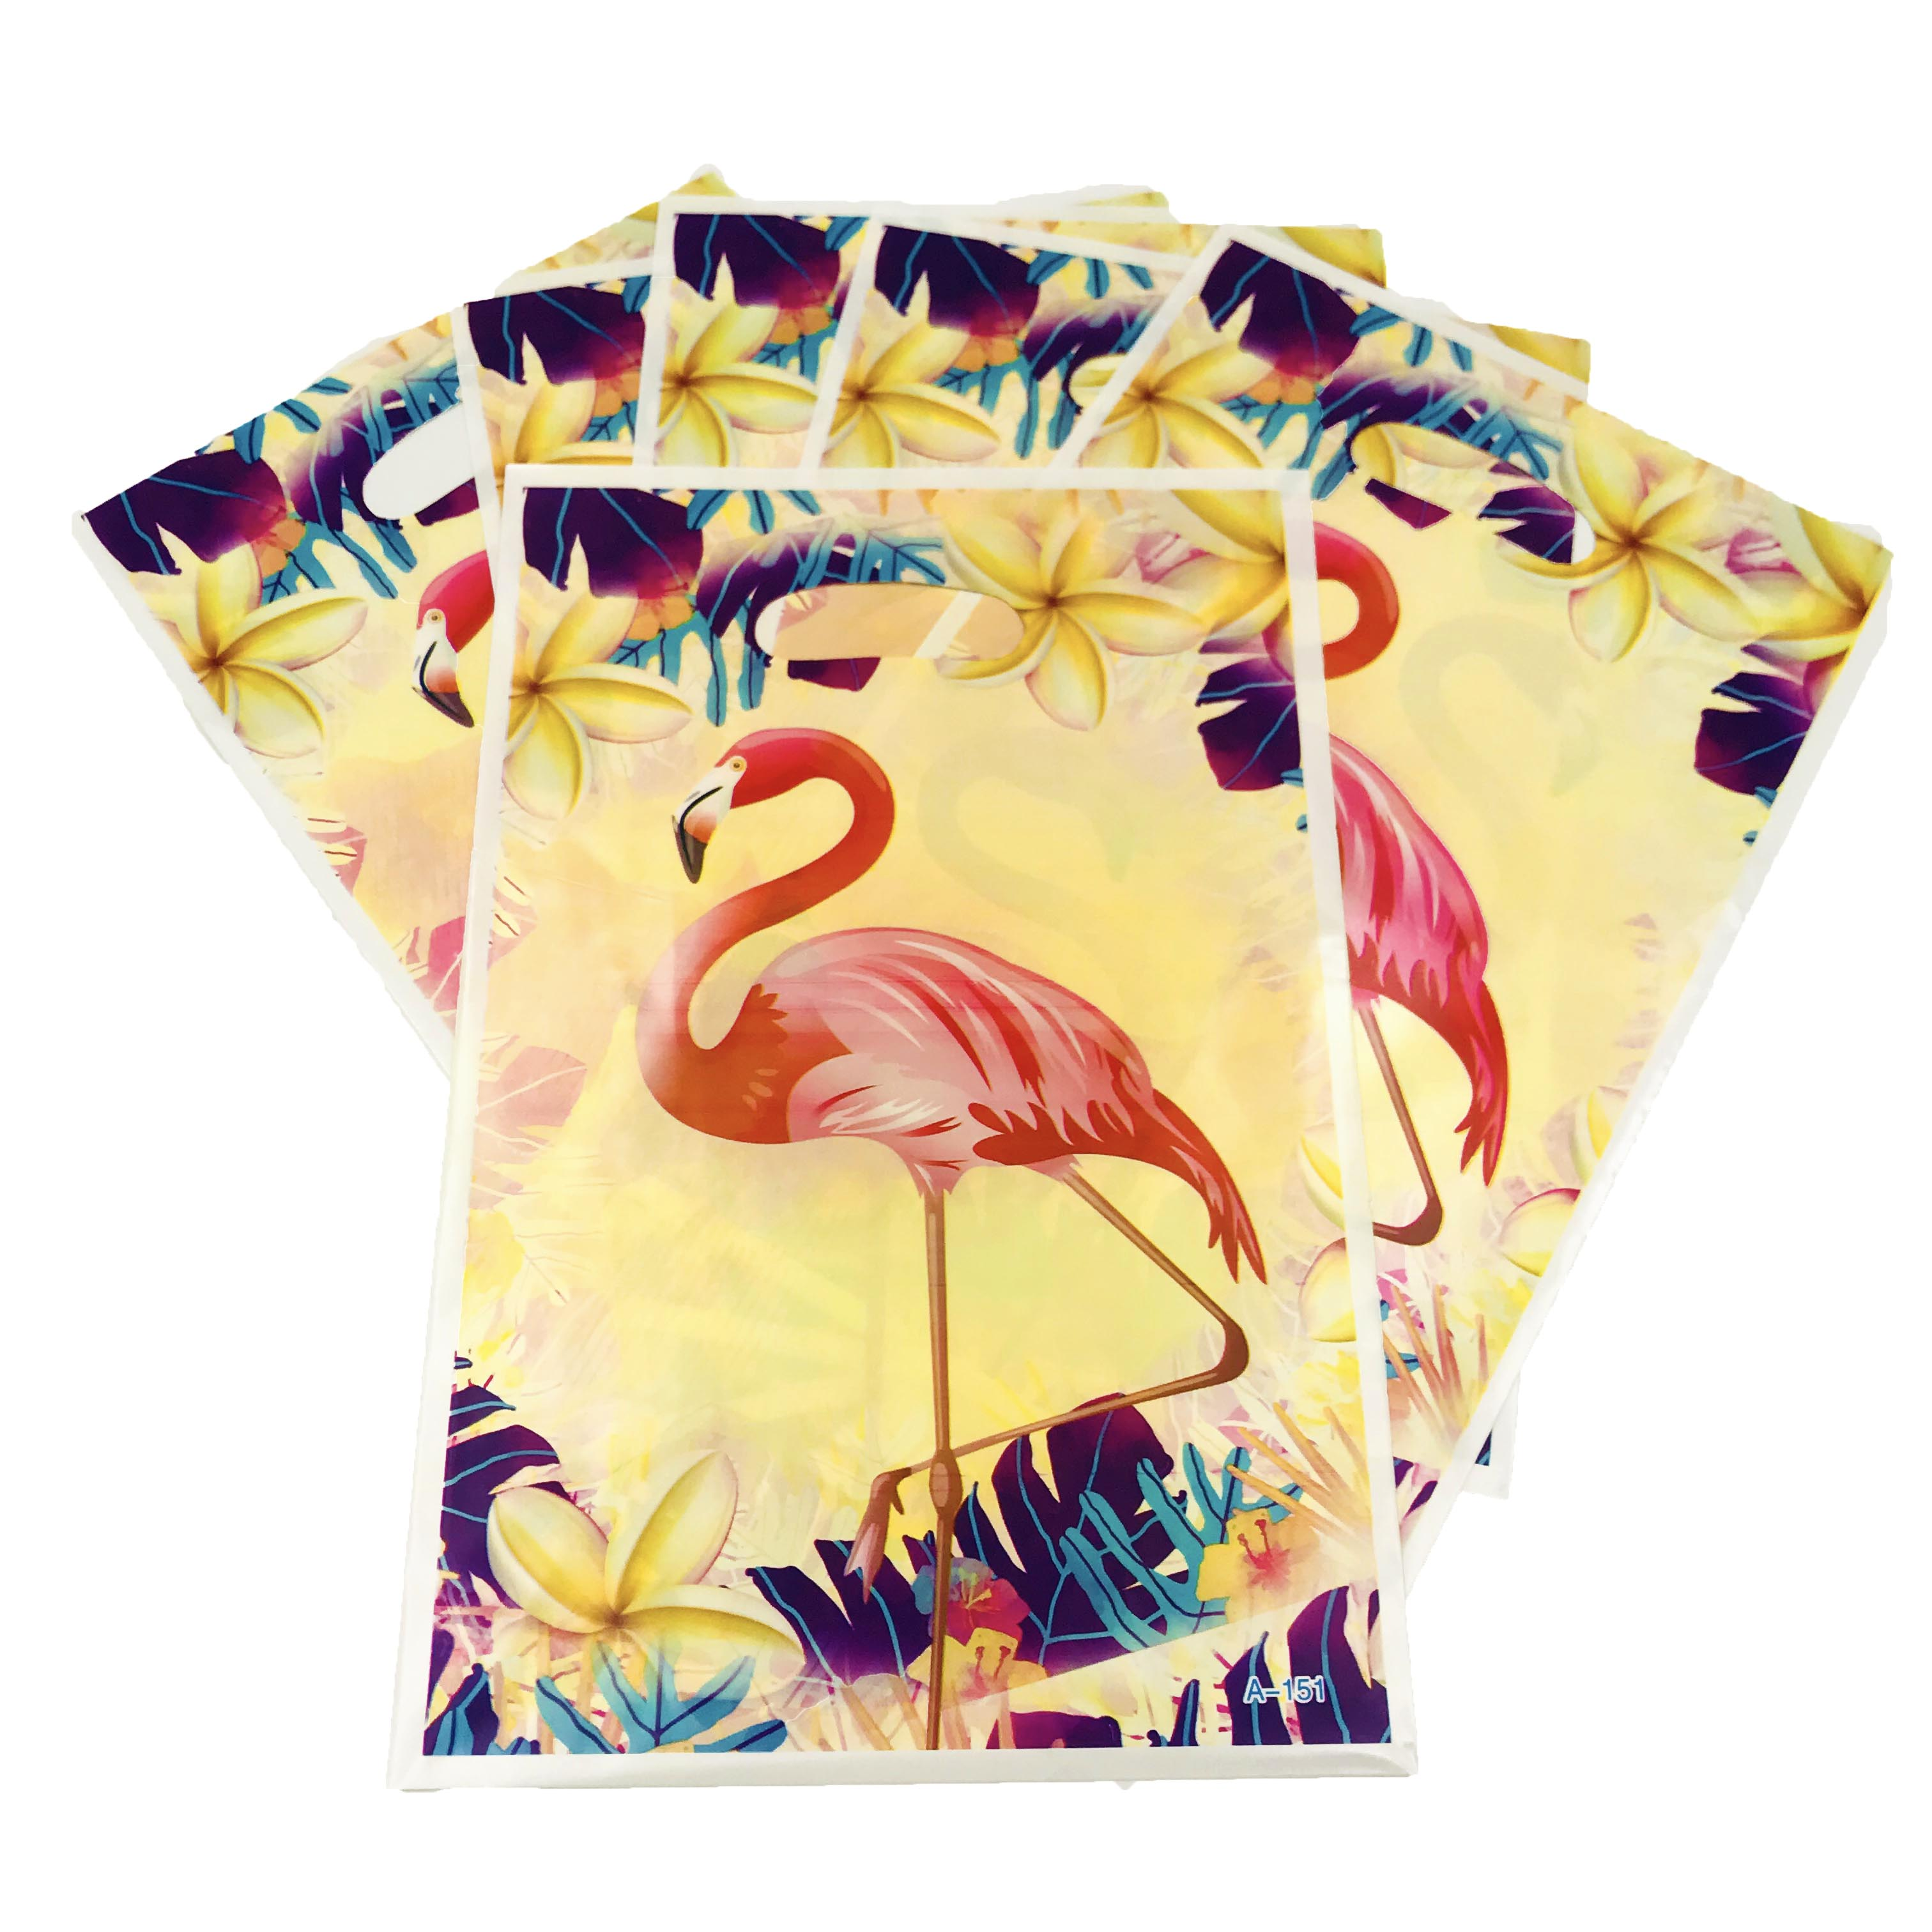 6pcsset Flamingo Plastic Bags Shop Clothes Gift Bags With Handles Wedding Birthday Party Supplies Gift Bags Cookies Storage Bag